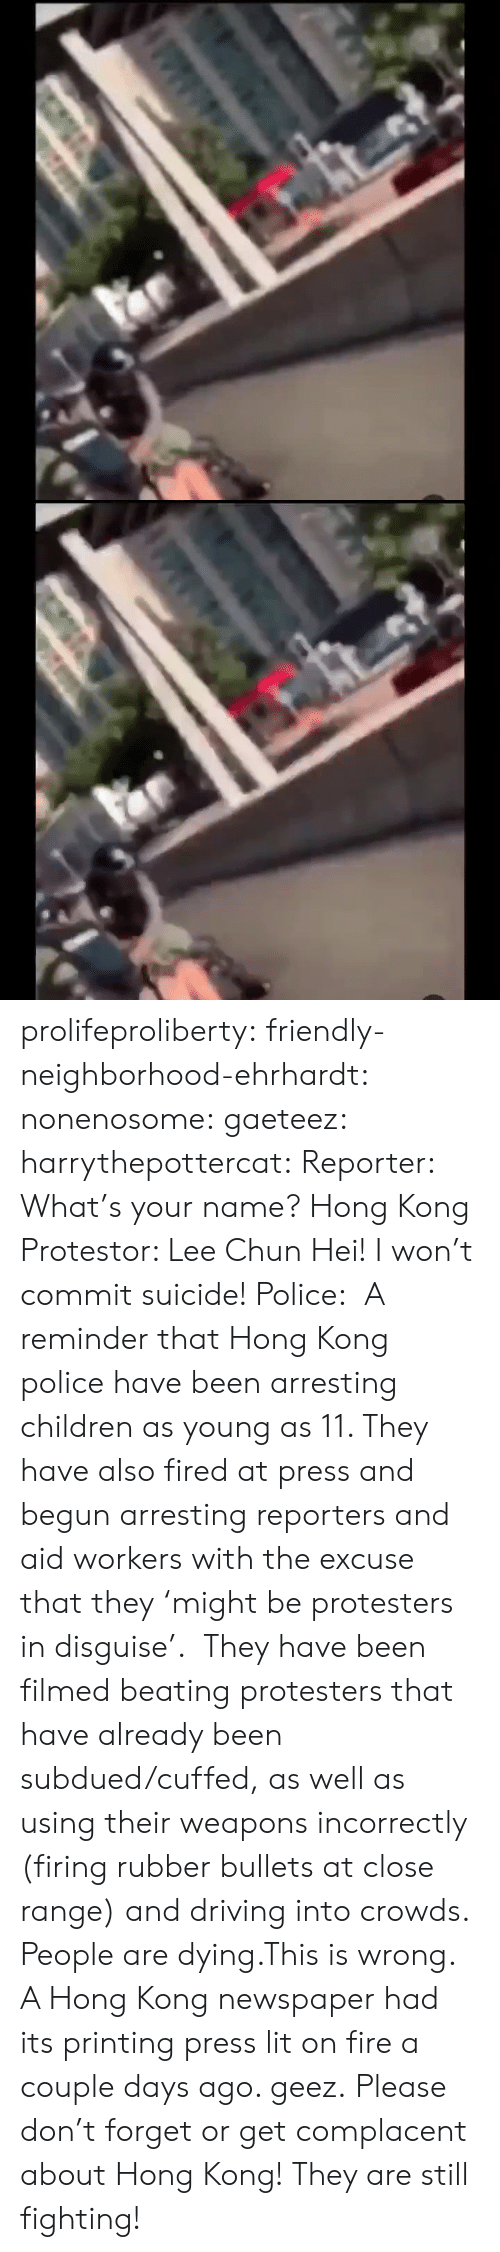 Aid: के.  ॥ल prolifeproliberty:  friendly-neighborhood-ehrhardt:  nonenosome:  gaeteez:   harrythepottercat:  Reporter: What's your name? Hong Kong Protestor: Lee Chun Hei! I won't commit suicide! Police:    A reminder that Hong Kong police have been arresting children as young as 11. They have also fired at press and begun arresting reporters and aid workers with the excuse that they 'might be protesters in disguise'.  They have been filmed beating protesters that have already been subdued/cuffed, as well as using their weapons incorrectly (firing rubber bullets at close range) and driving into crowds.  People are dying.This is wrong.    A Hong Kong newspaper had its printing press lit on fire a couple days ago.   geez.   Please don't forget or get complacent about Hong Kong! They are still fighting!